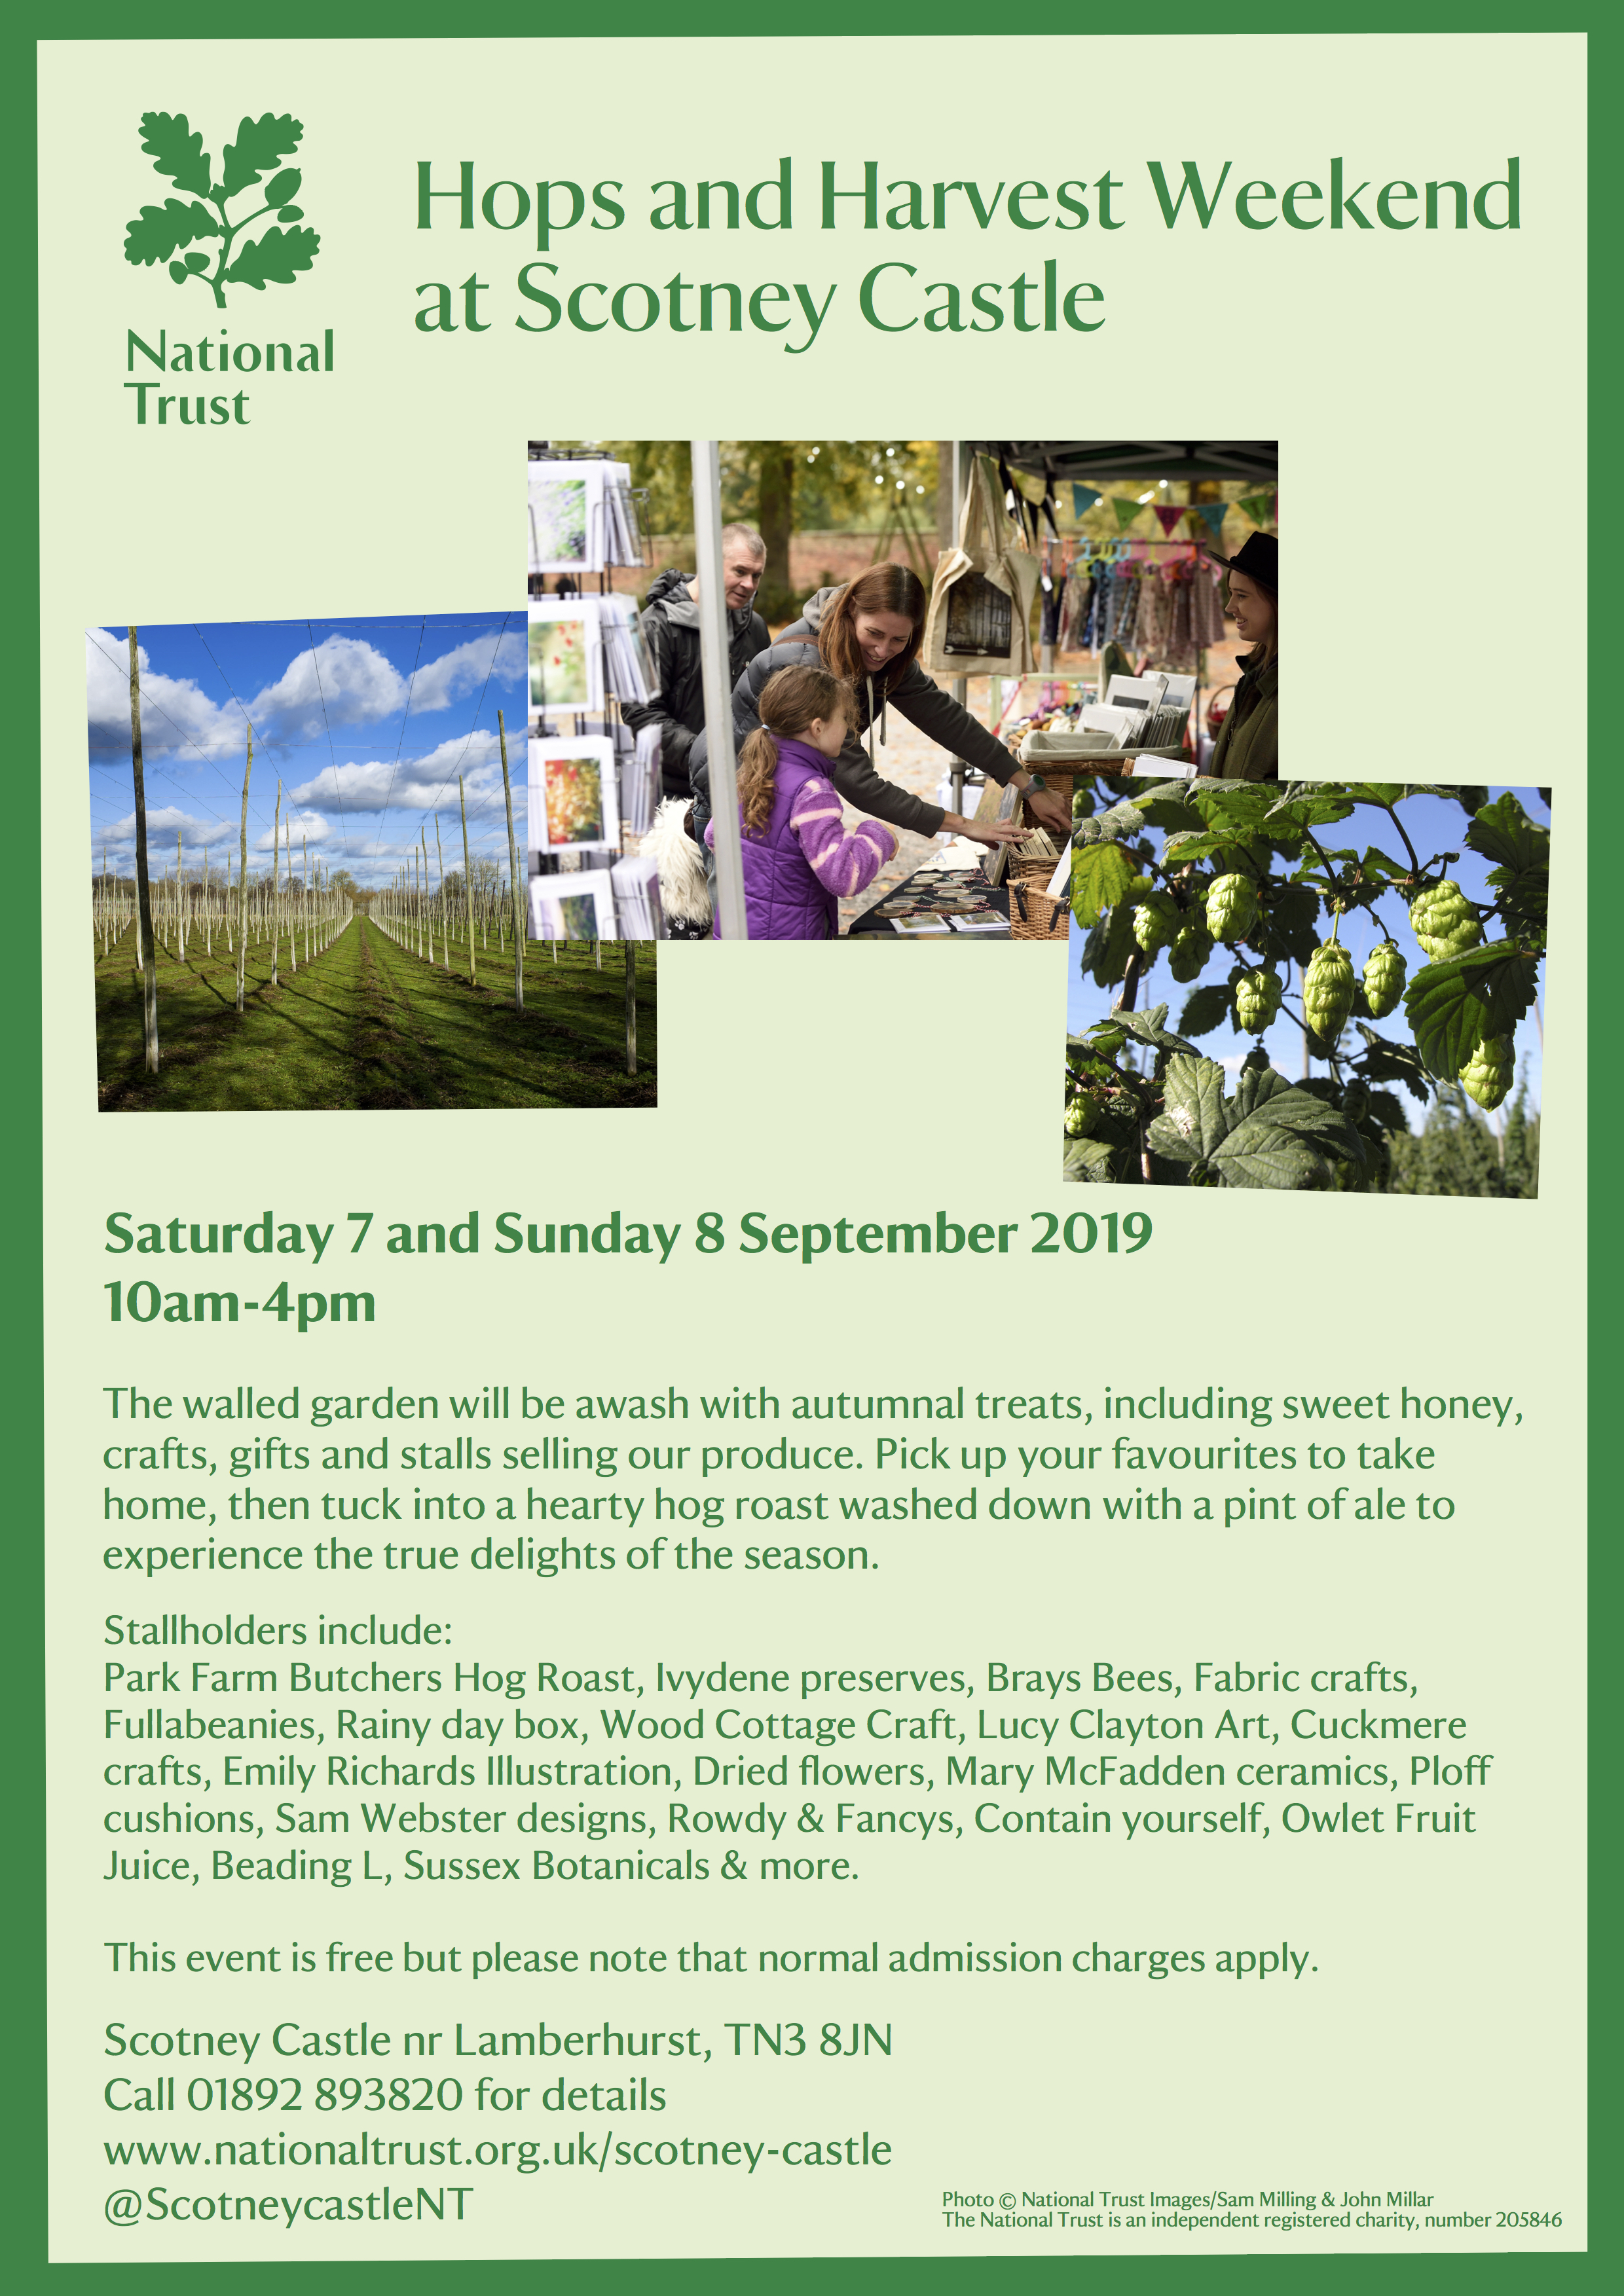 Hops and Harvest Weekend at Scotney Castle in Kent